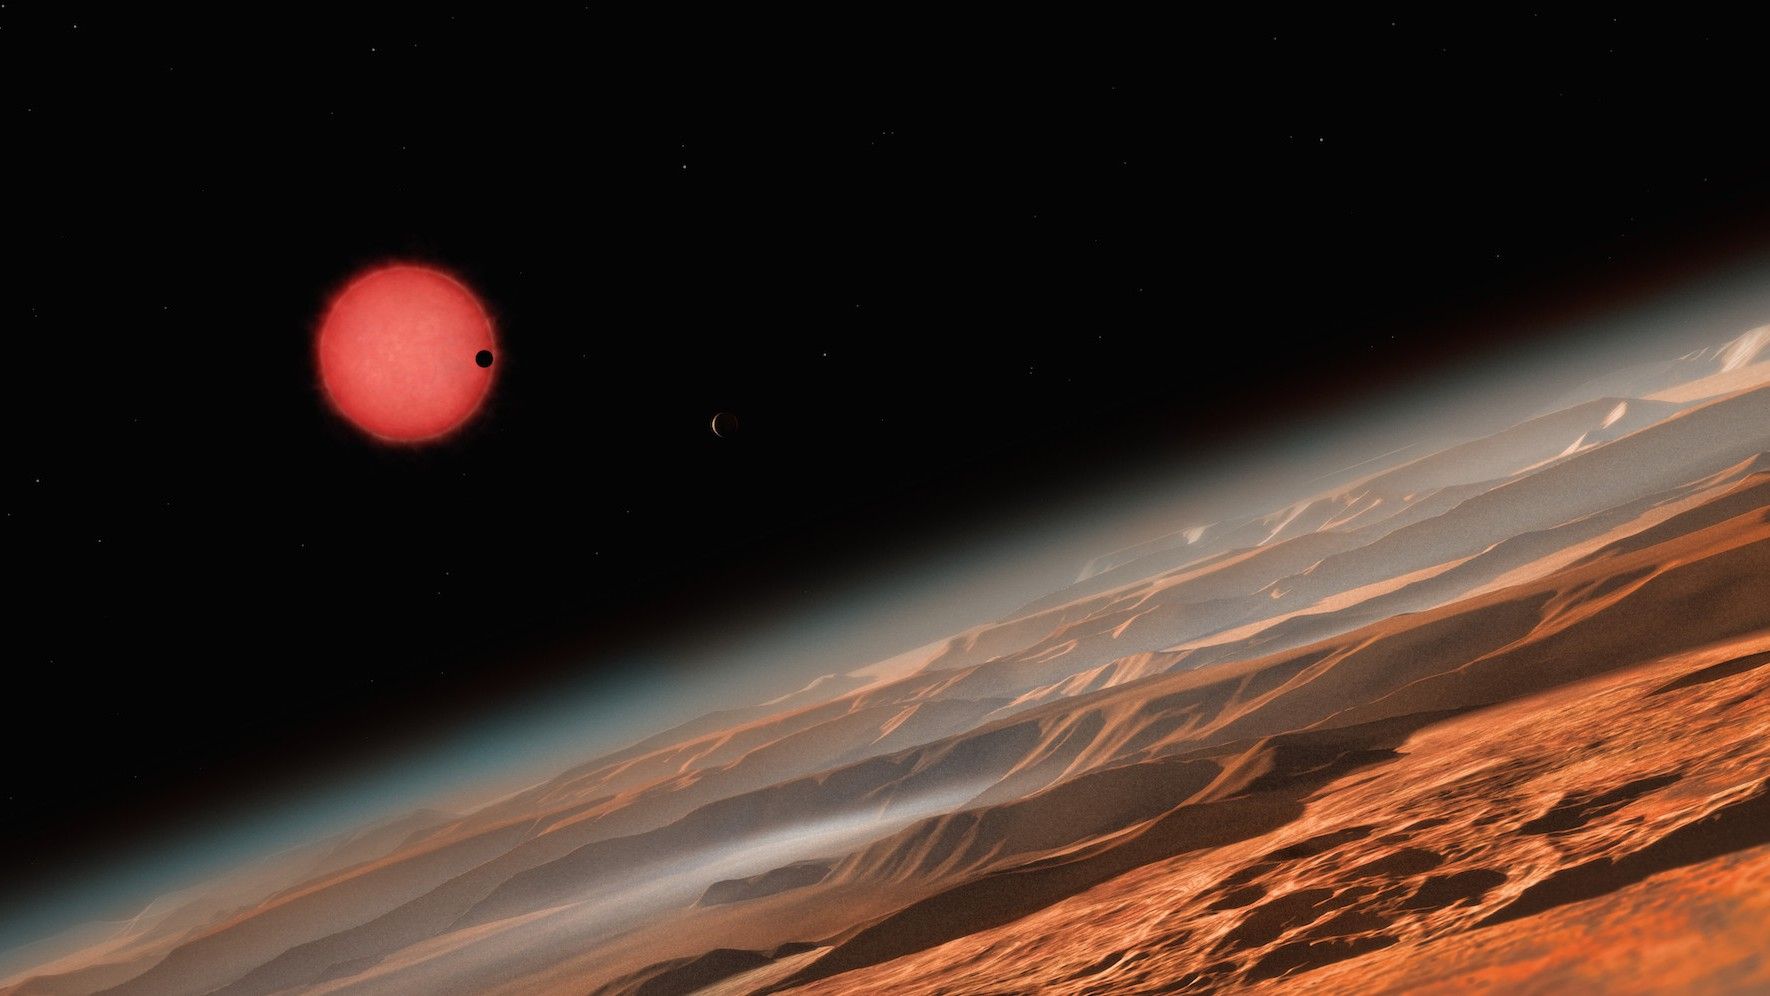 Three Potentially Habitable Planets Have Been Found in Our Cosmic Backyard